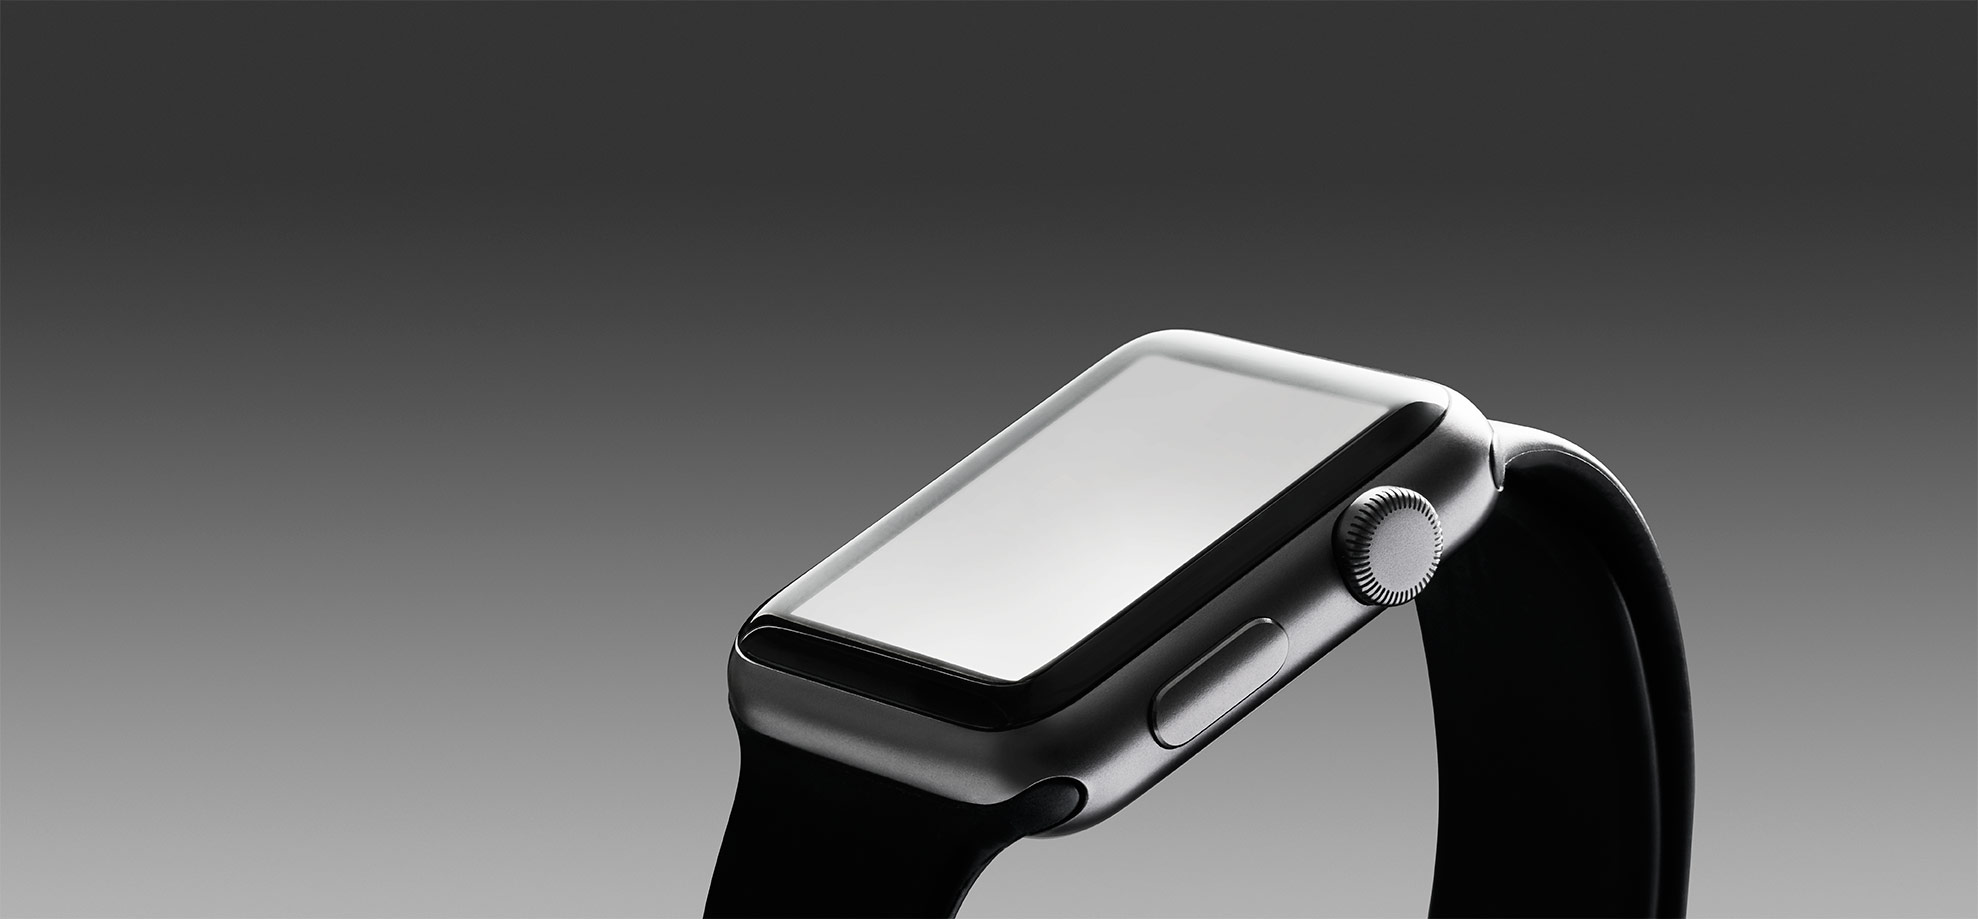 AppleWatch_01-copy